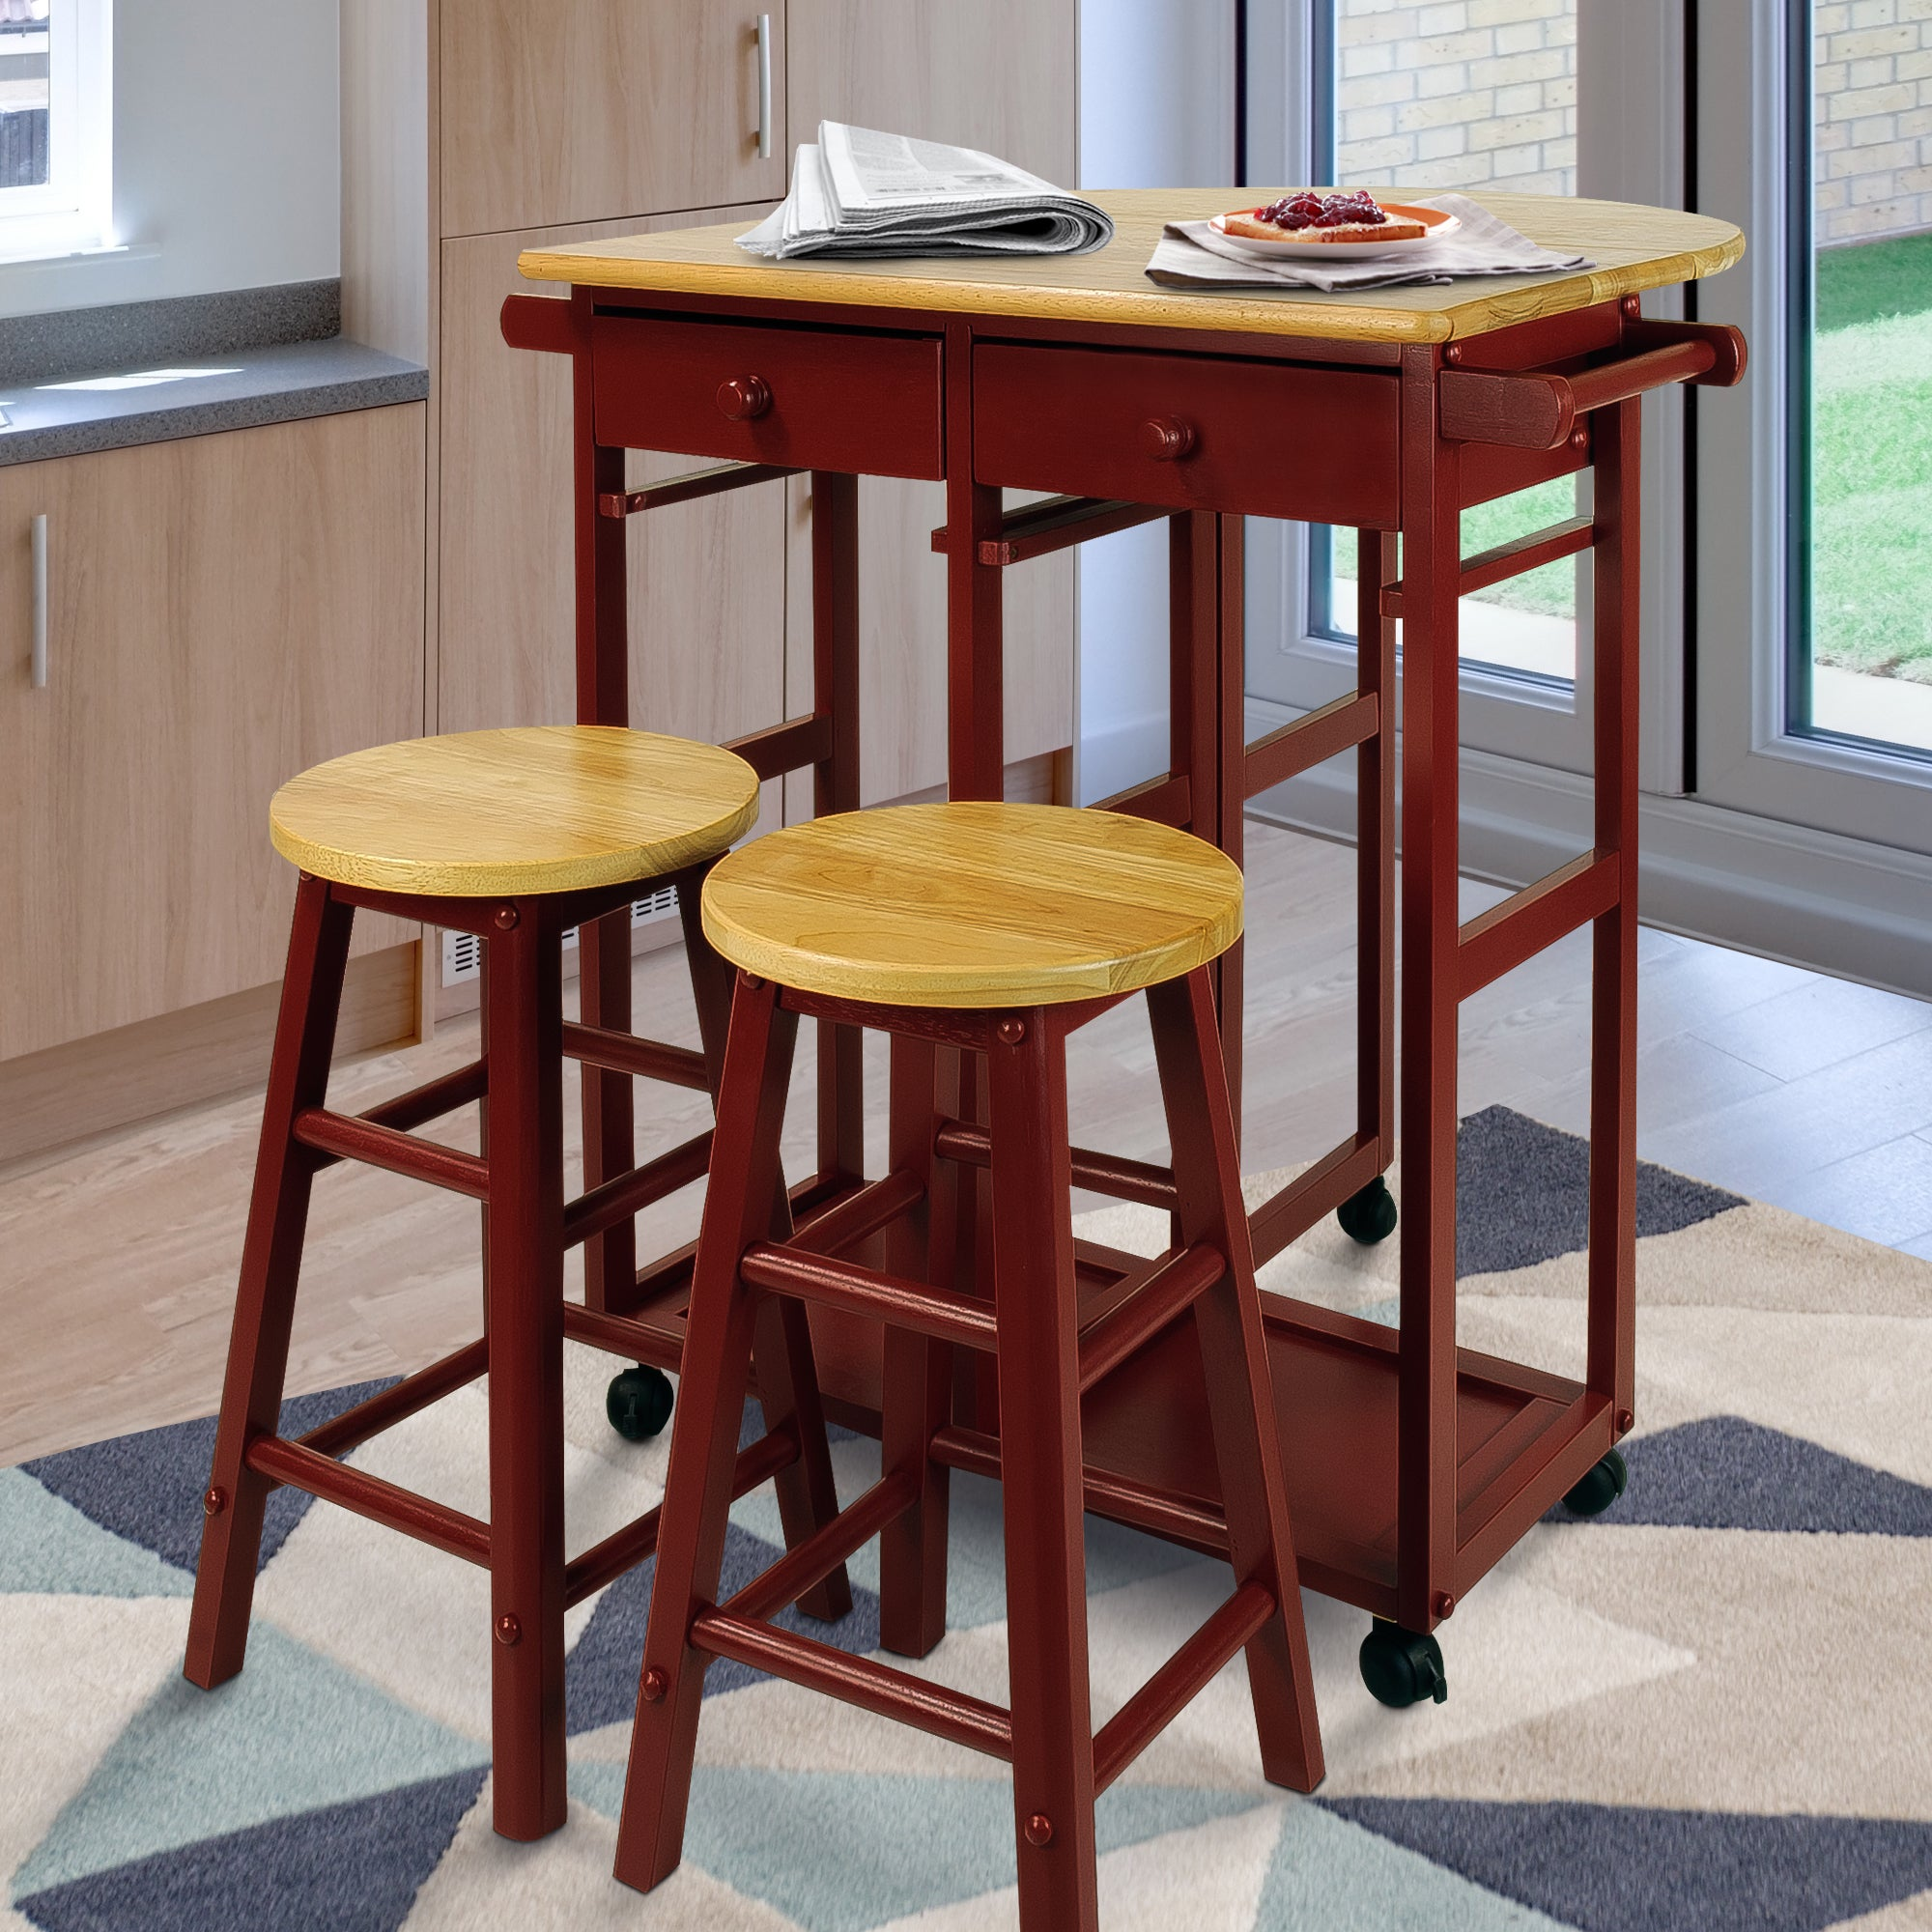 Red Kitchen Table: Drop Leaf Table Kitchen Breakfast Cart Dining Room Chairs